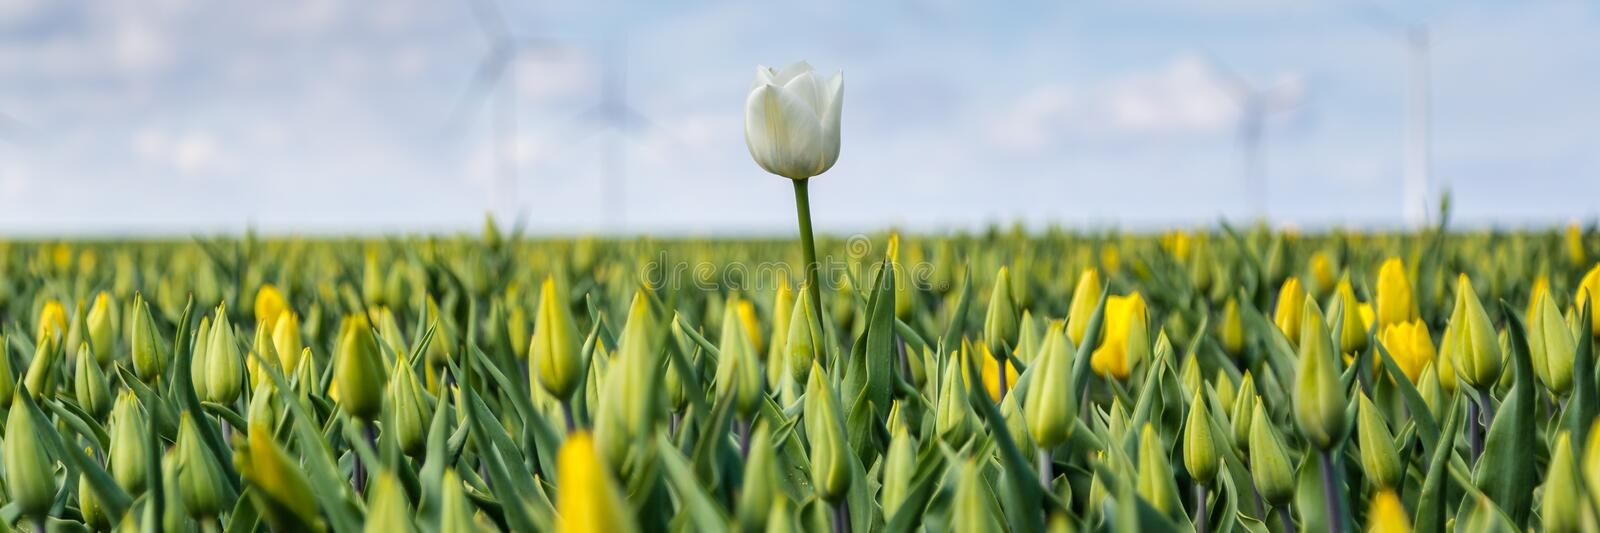 Web banner with yellow tulips fields during springtime in the N stock image